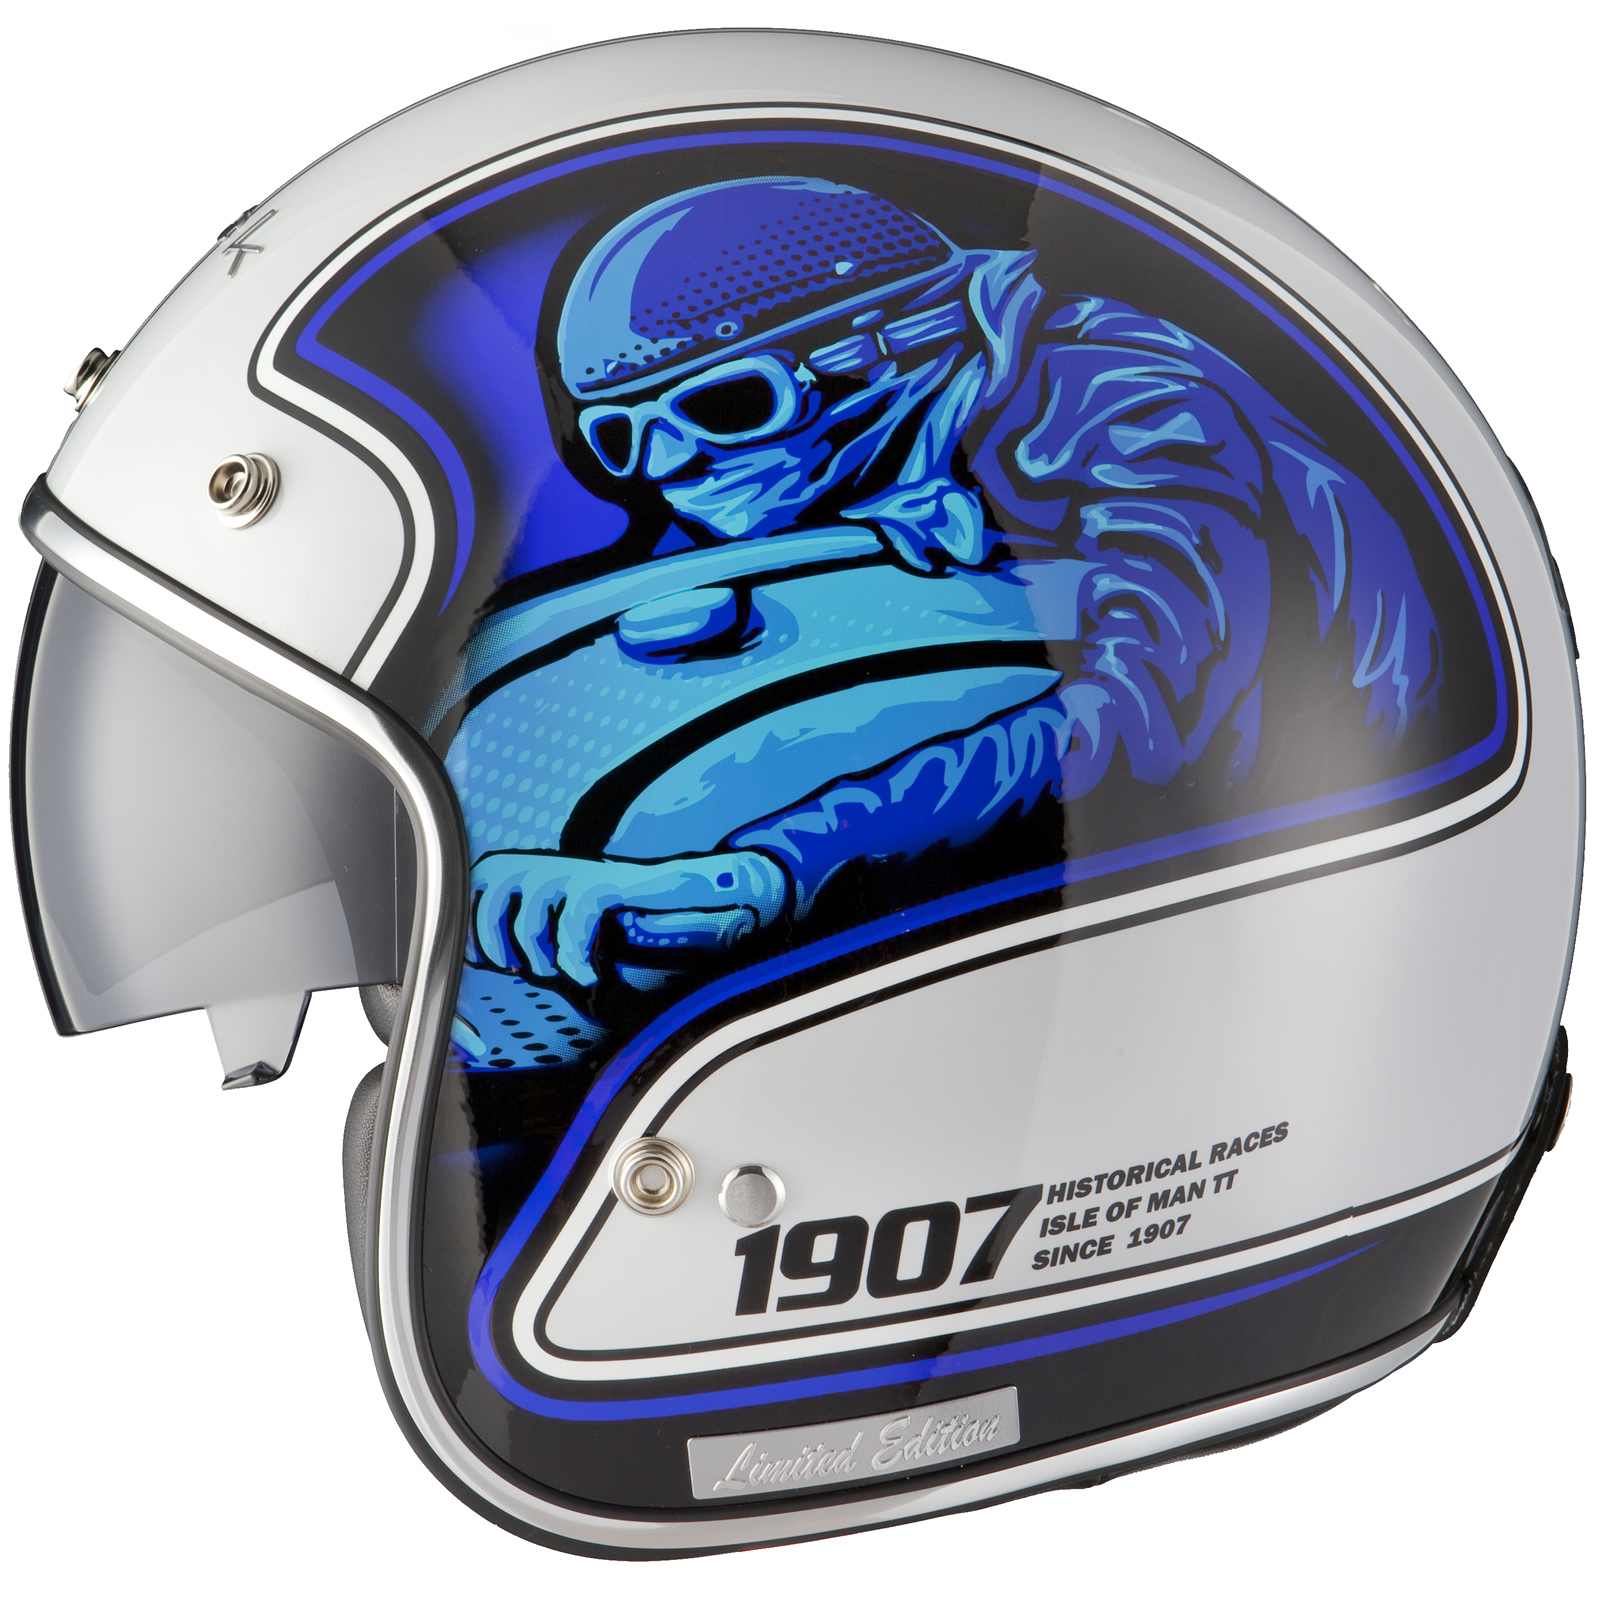 black moto racer blue white limited edition helmet motorcycle racing history ebay. Black Bedroom Furniture Sets. Home Design Ideas